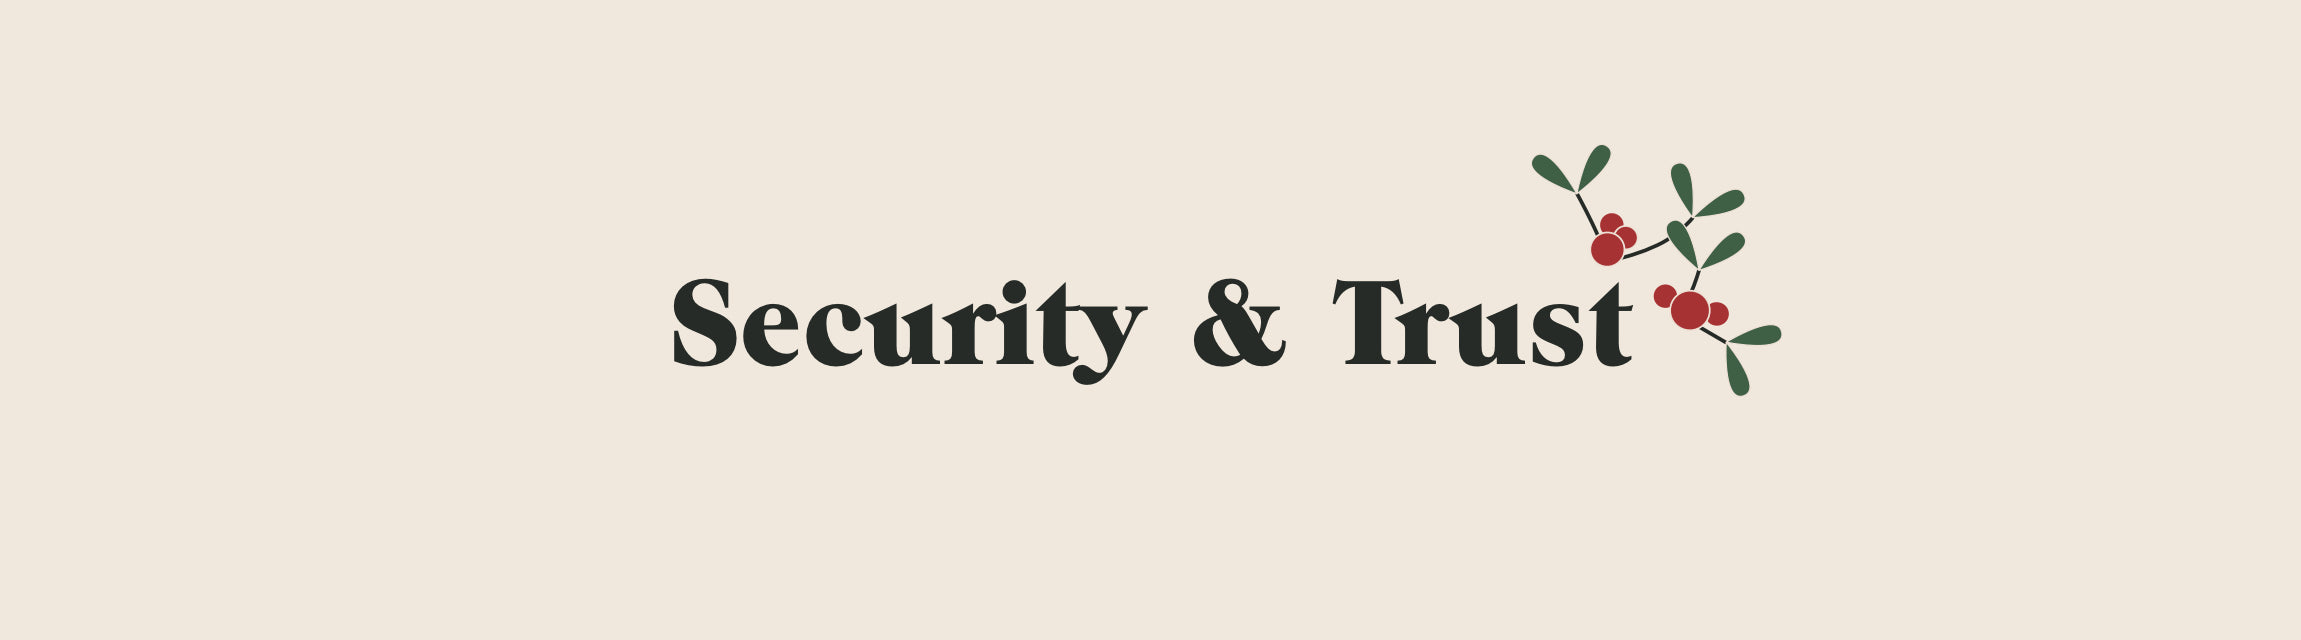 Security & Trust title with mistletoe icon